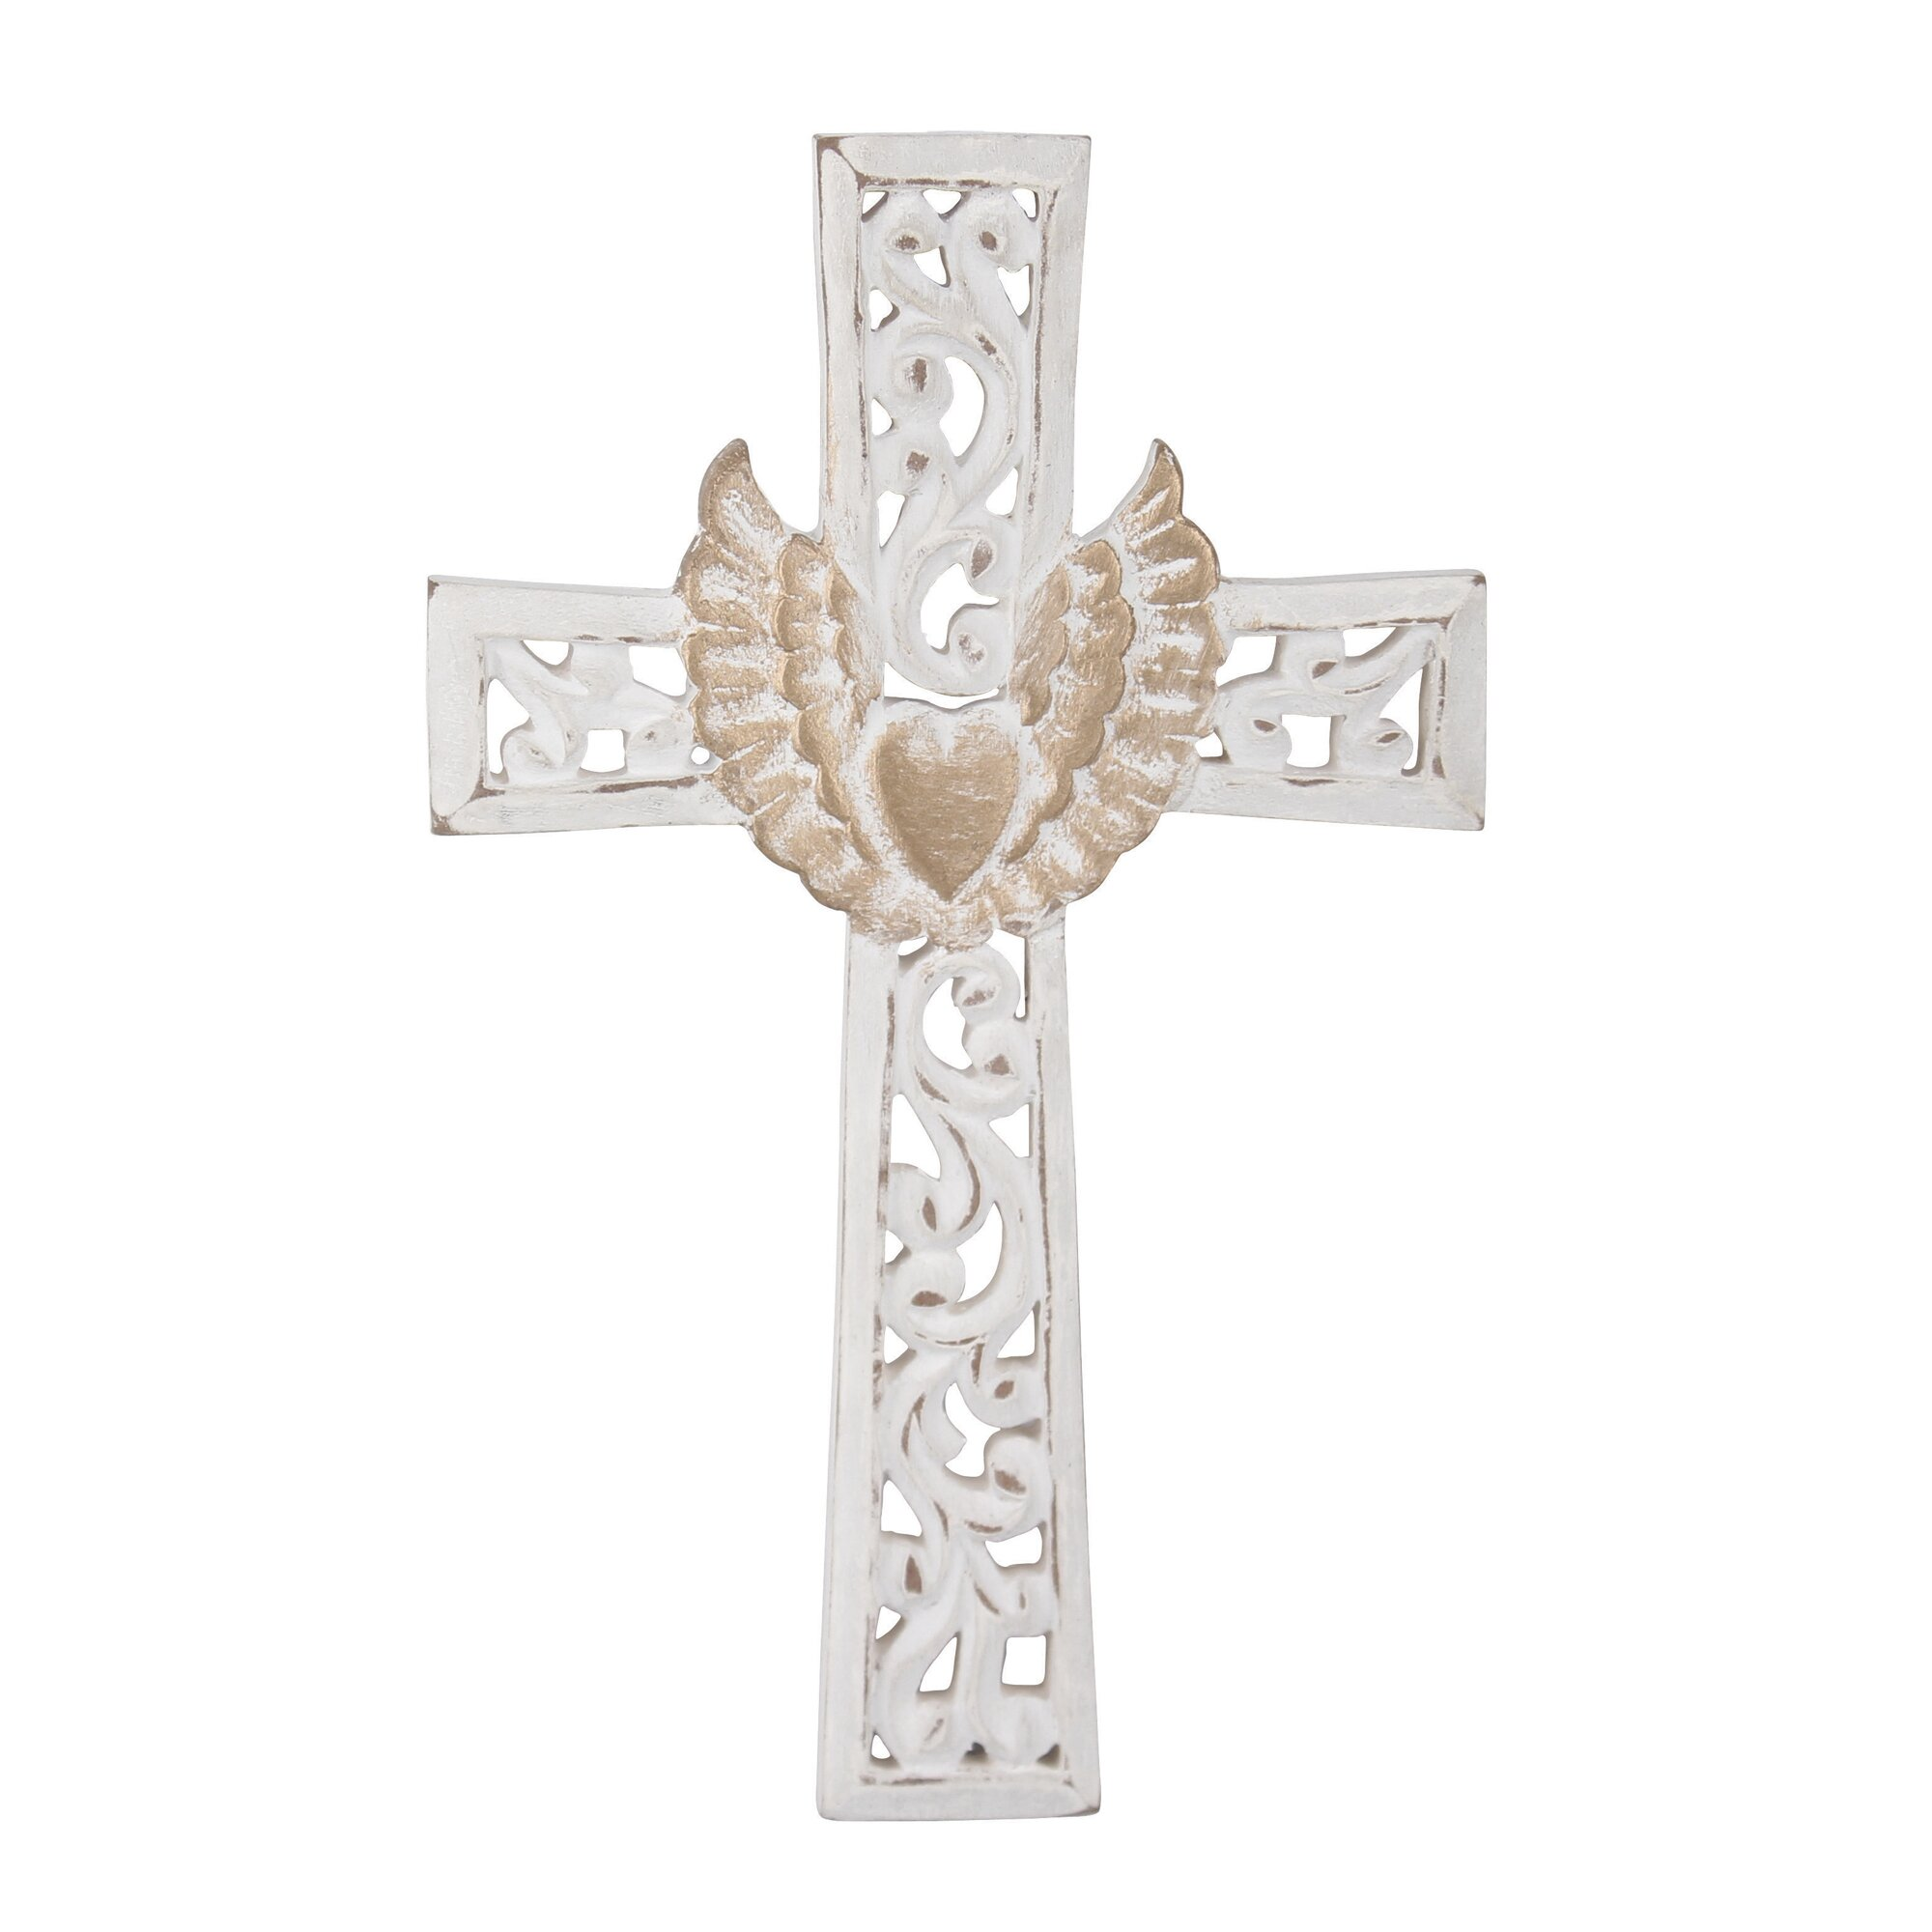 Ckk home d cor lp stonebriar winged heart cross wall for Cross decorations for home